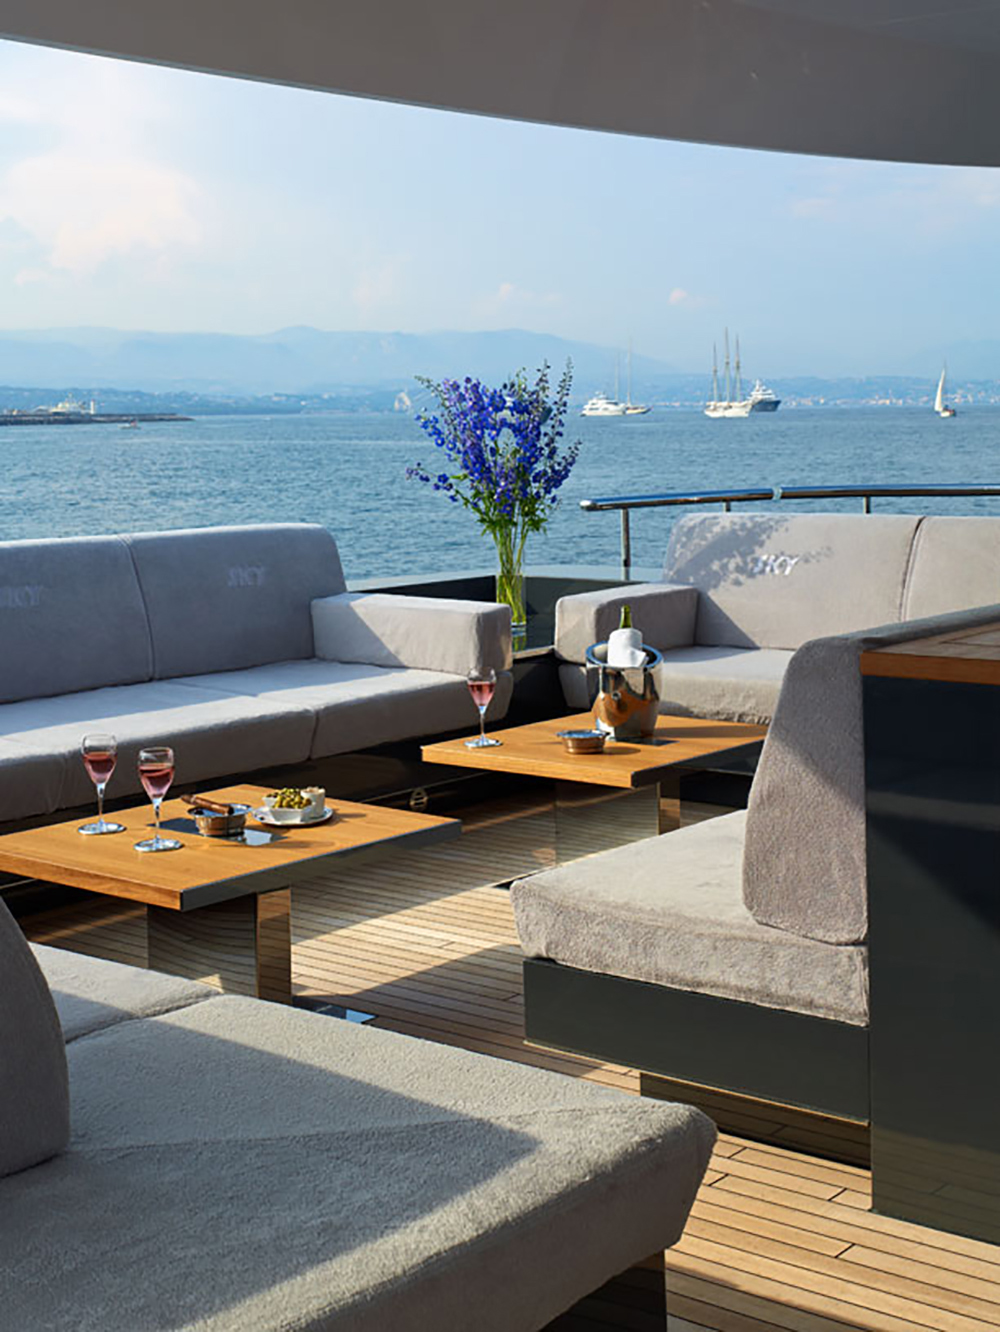 This is the open space patio designed with wood flooring and tables. Around it are the cushioned grey sofa. By having these, you can freely enjoy a glass of wine while savoring the coolness and stillness of the ocean.